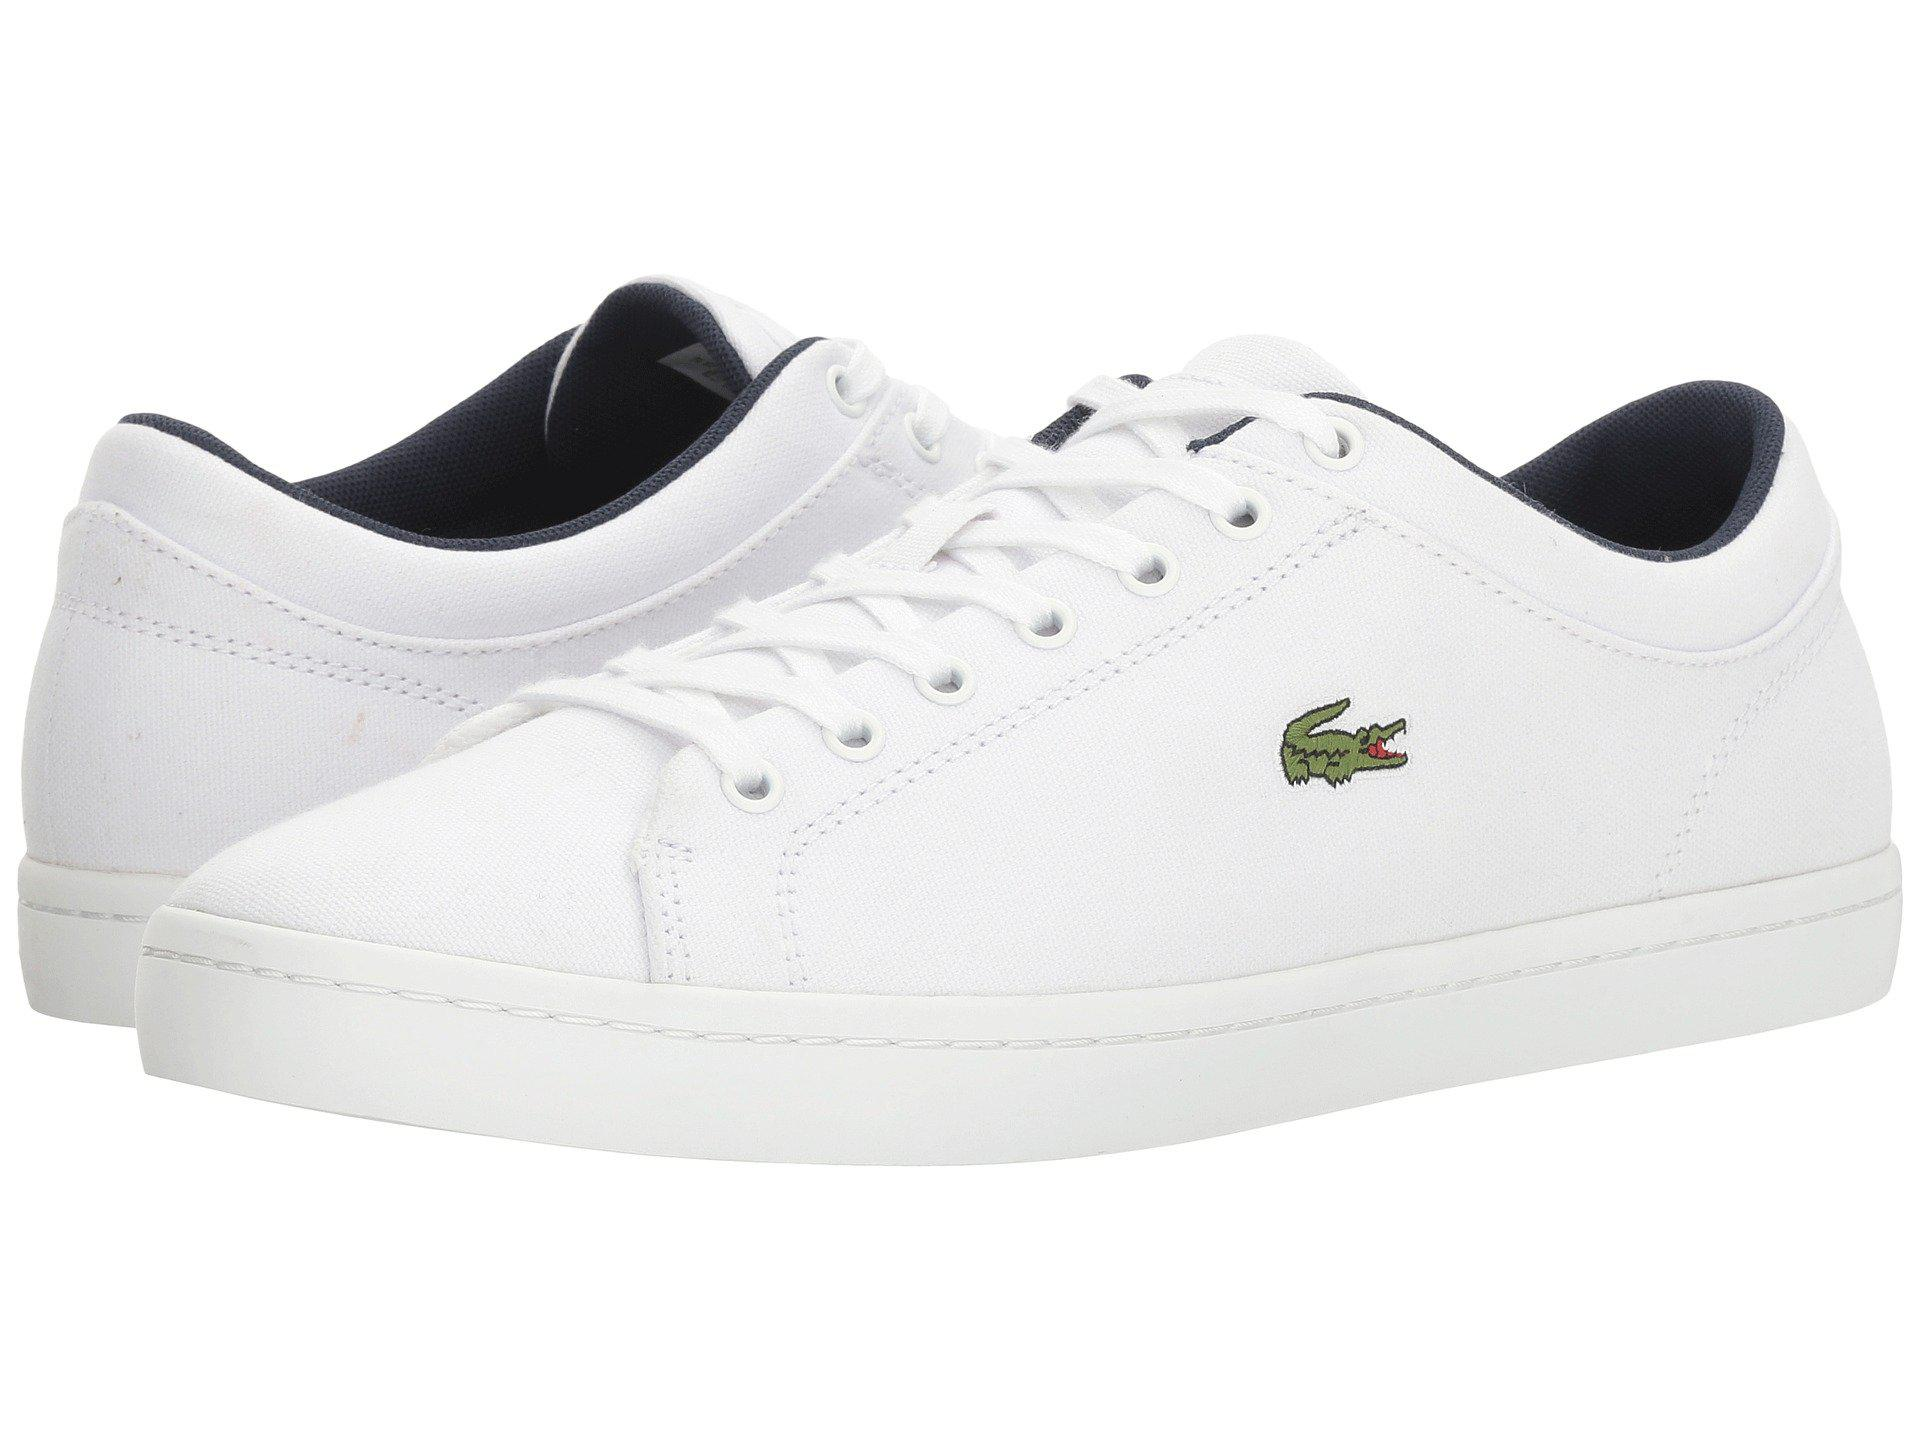 6c129c72a9883 Lyst - Lacoste Straightset Bl 2 (navy) Men s Shoes in White for Men